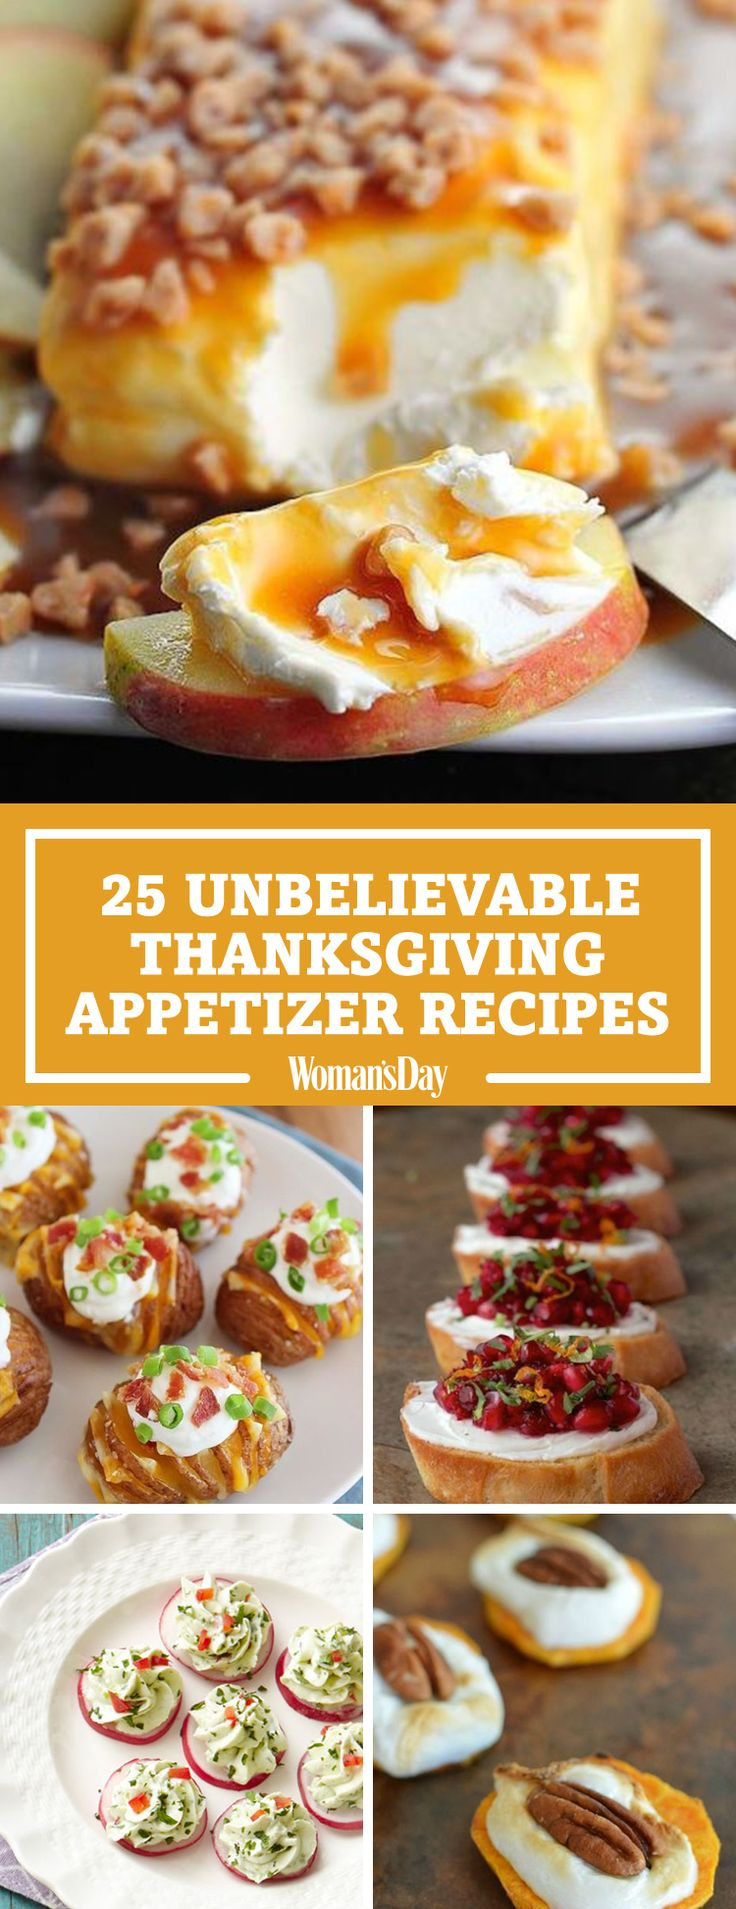 Your guests will have a lot to be thankful for when they try these delectable Thanksgiving appetizers. Make caramel apple cream cheese spread or crispy loaded Hasselback potato bites for your Thanksgiving dinners this year.